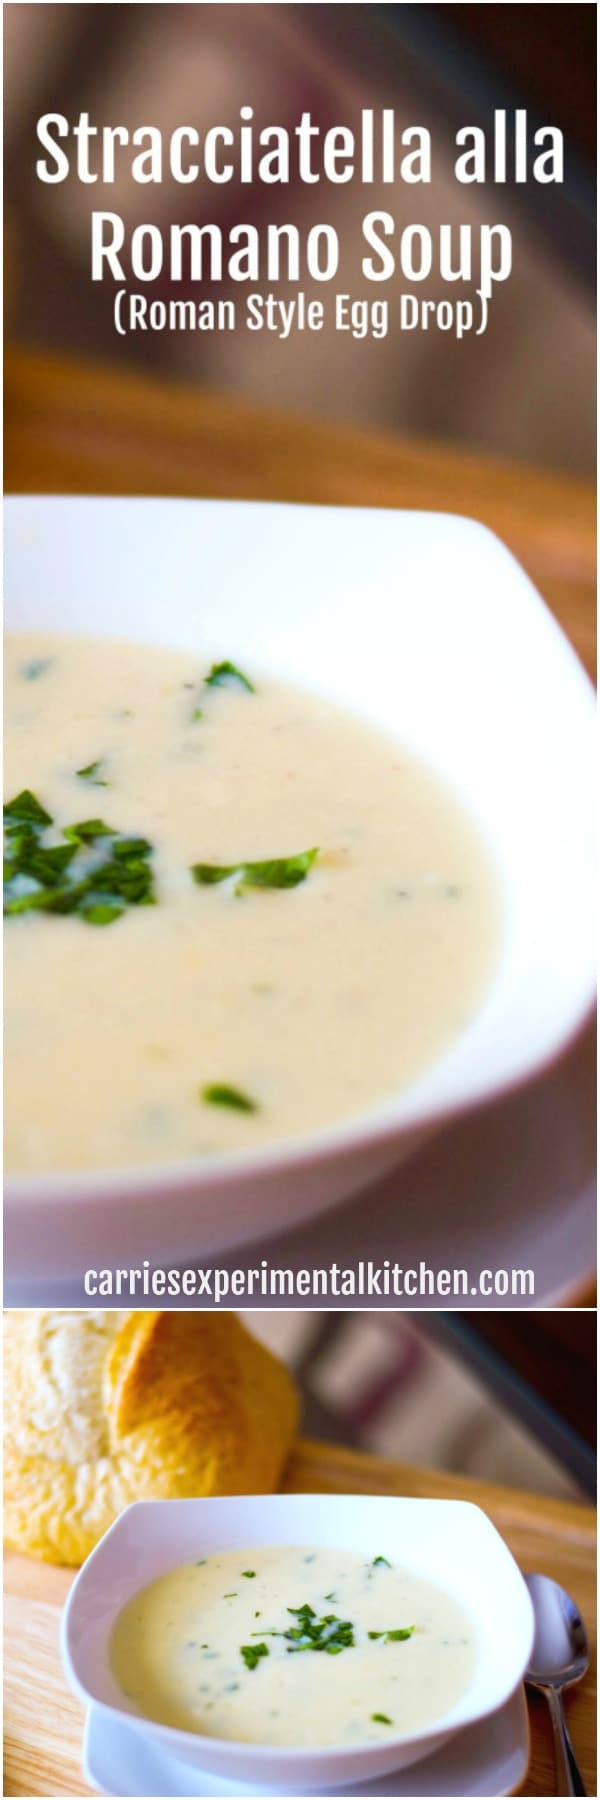 Stacciatella alla Romano or otherwise known as Roman Style Egg Drop Soup is an Italian soup consisting of a broth with a shredded eggs, cheese and spices.  #soup #easter #italian #italianfood